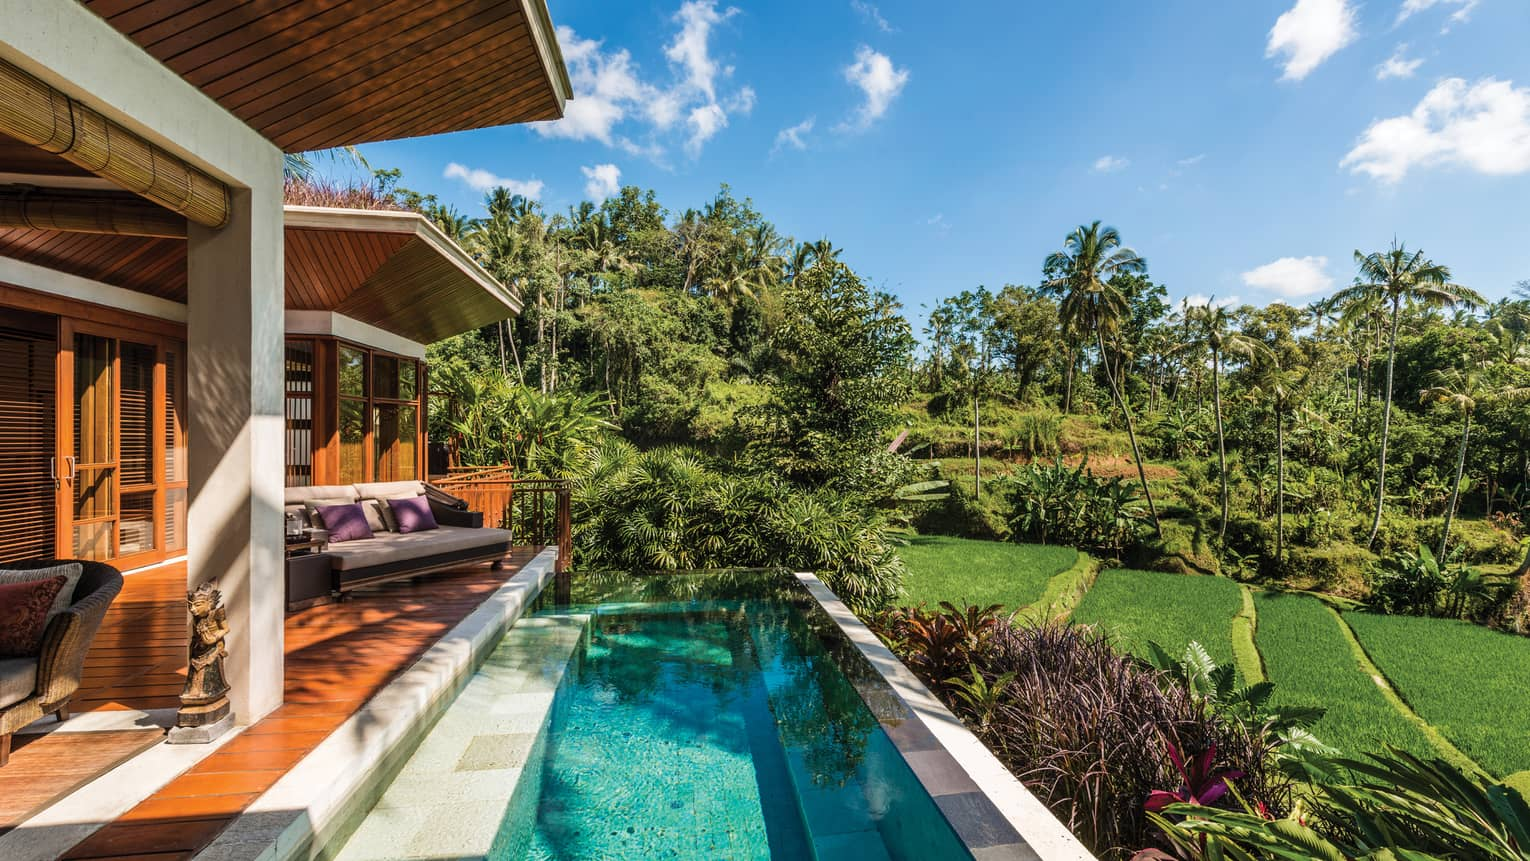 Sunny villa patio with wood deck, plush patio chair, small blue plunge swimming pool, green lawn and garden